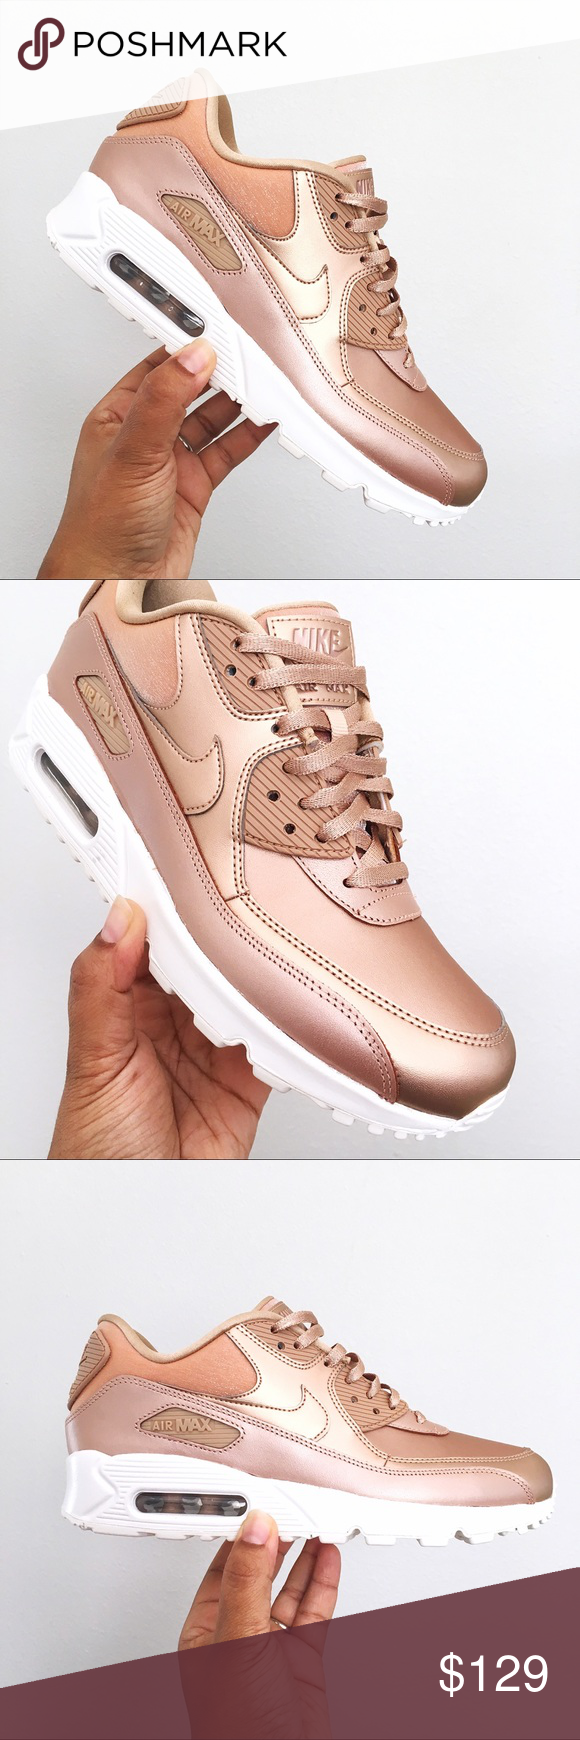 Nike Air Max 90 PRM Metallic Red Bronze Women 8.5 Brand New